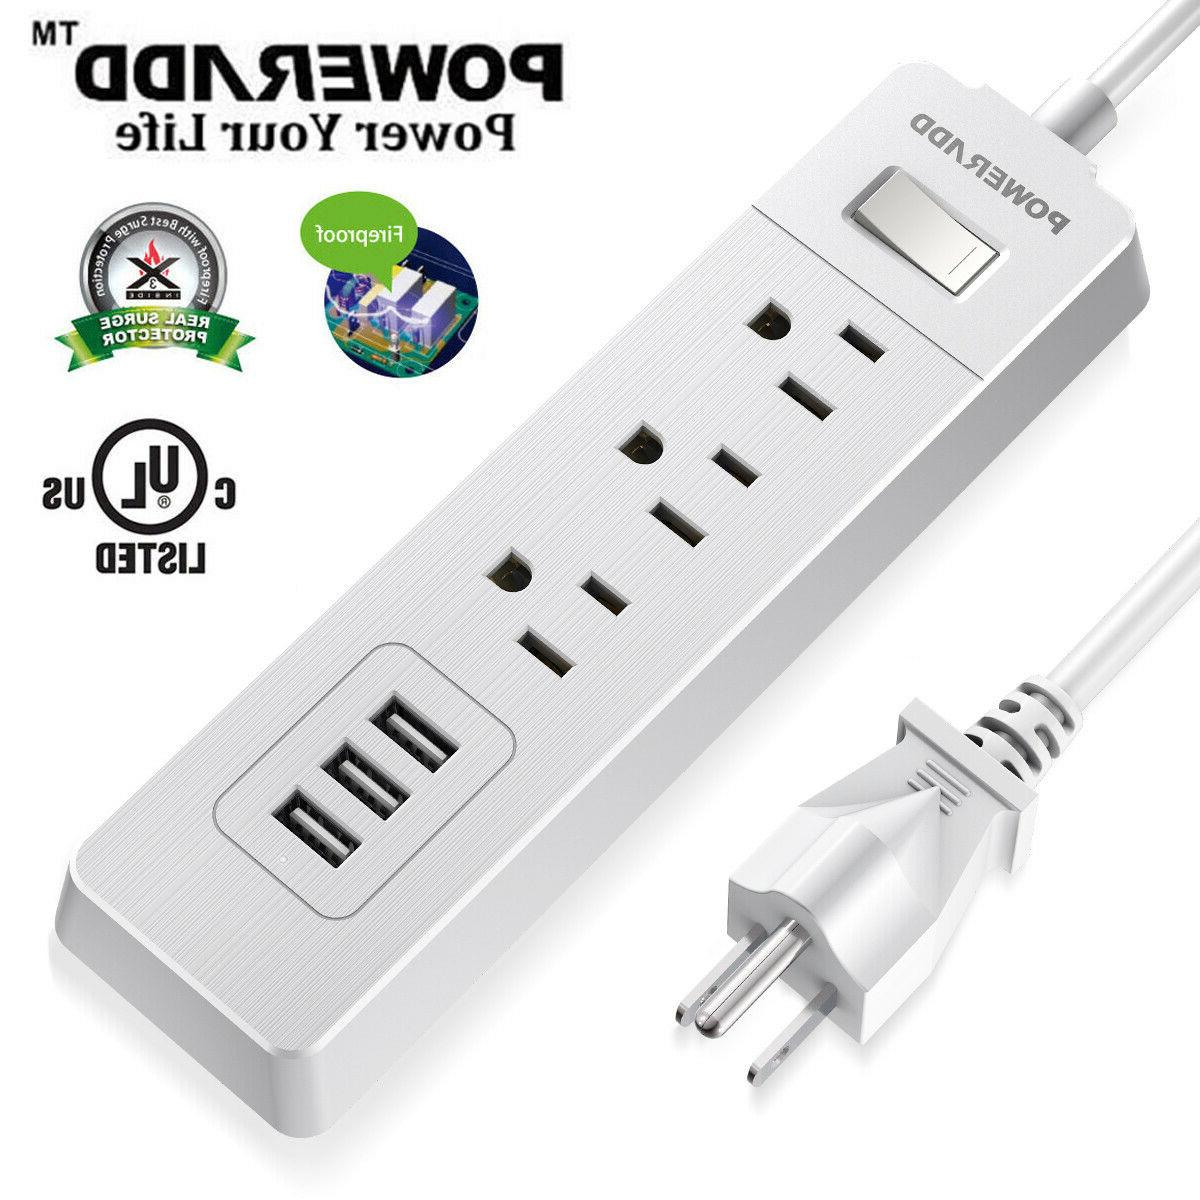 3outlet surge protector power strip 1250w 3